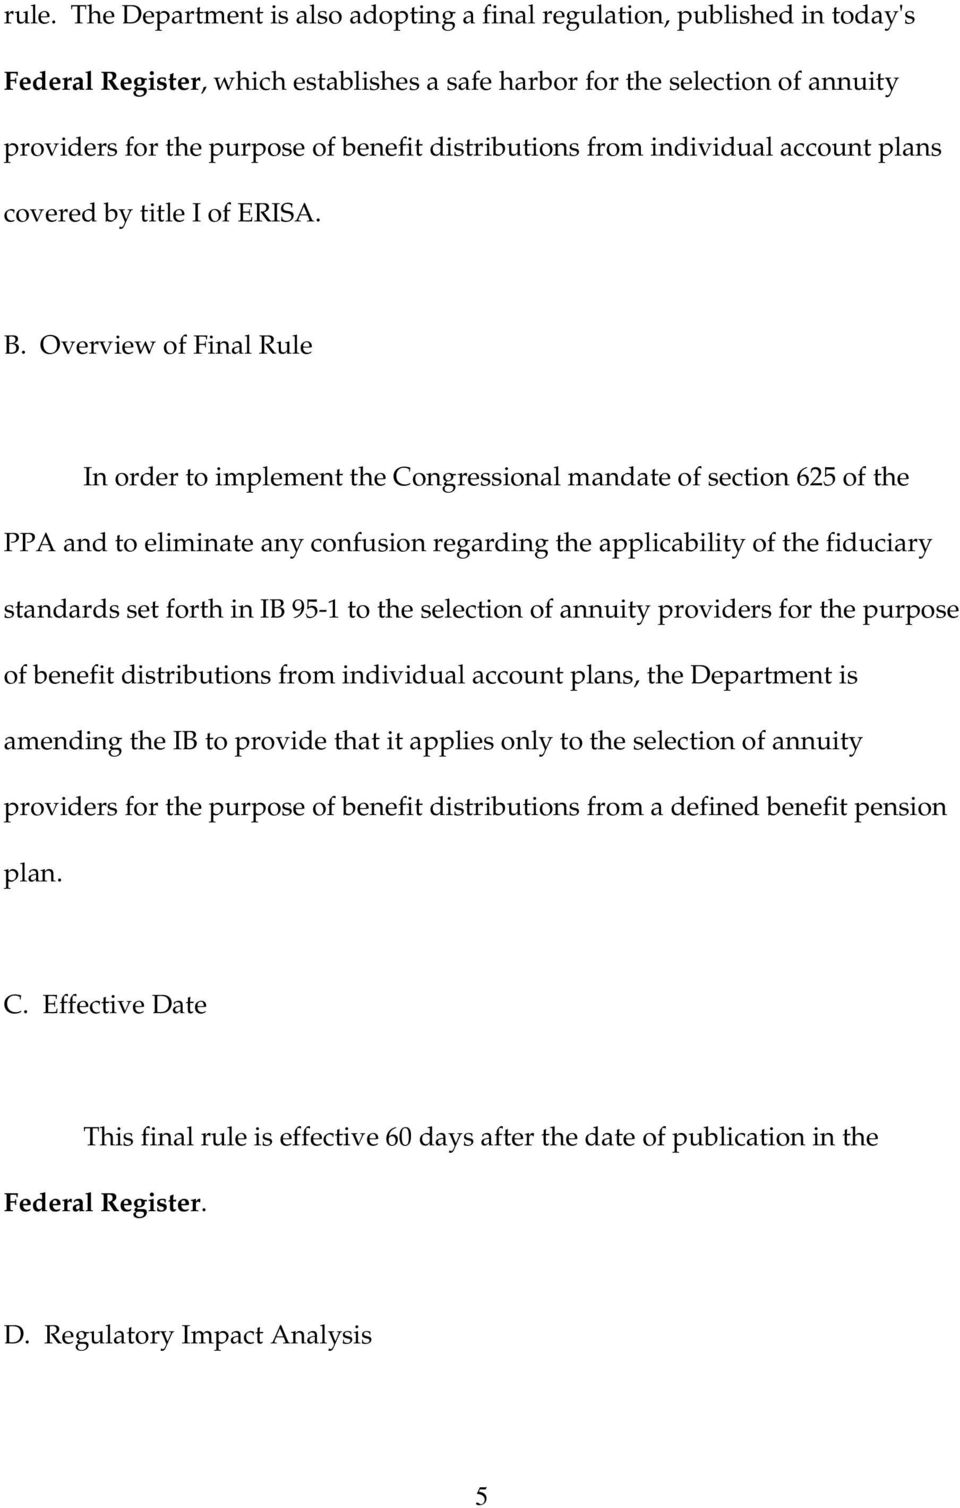 Overview of Final Rule In order to implement the Congressional mandate of section 625 of the PPA and to eliminate any confusion regarding the applicability of the fiduciary standards set forth in IB